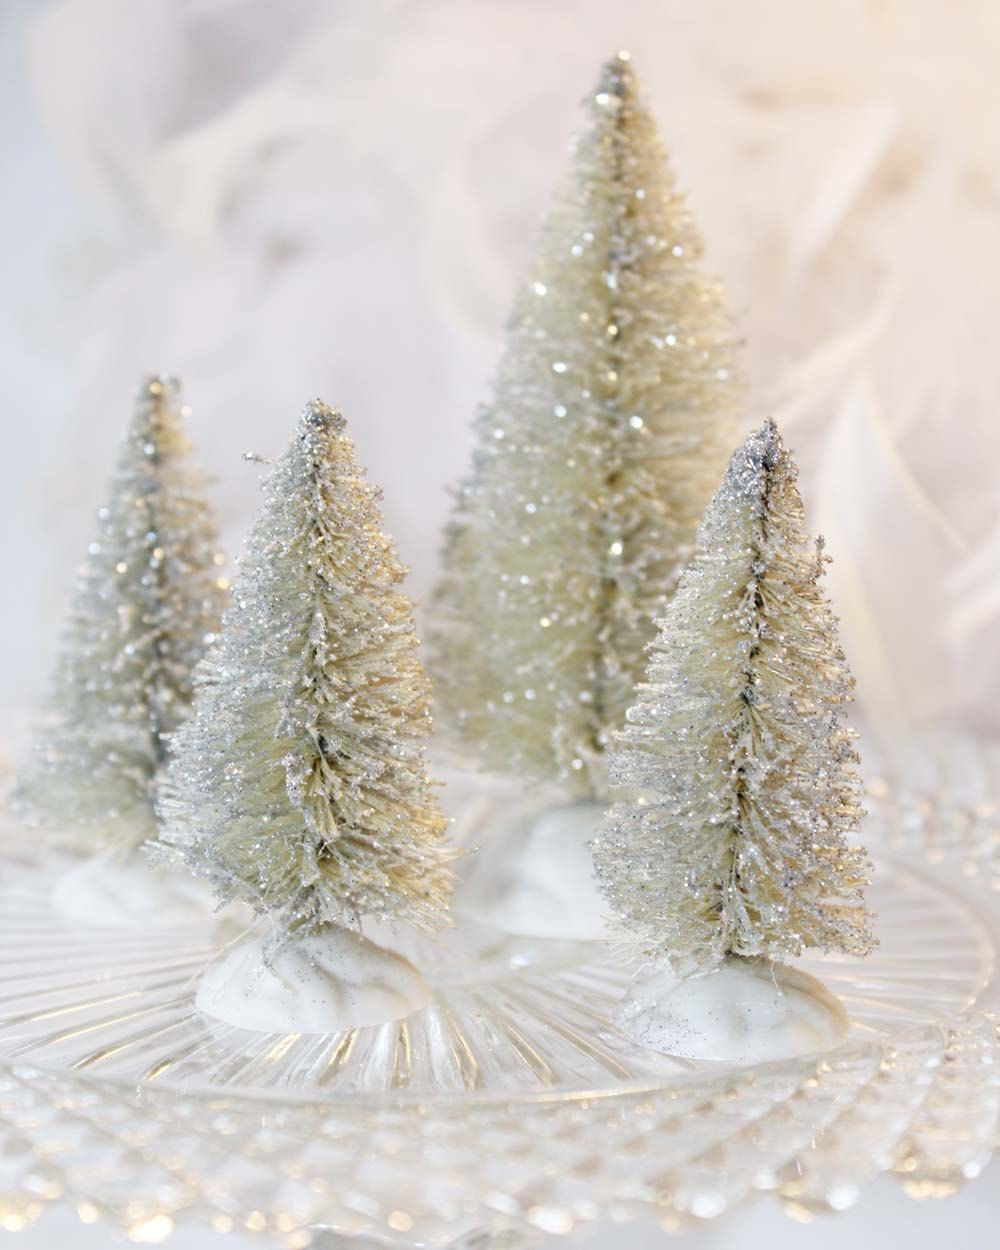 Vintage Inspired Bottle Brush Tree Set 4 Silver Glitter Bottle Brush Trees Bottle Brush Christmas Trees Christmas Tree Set Merry Little Christmas